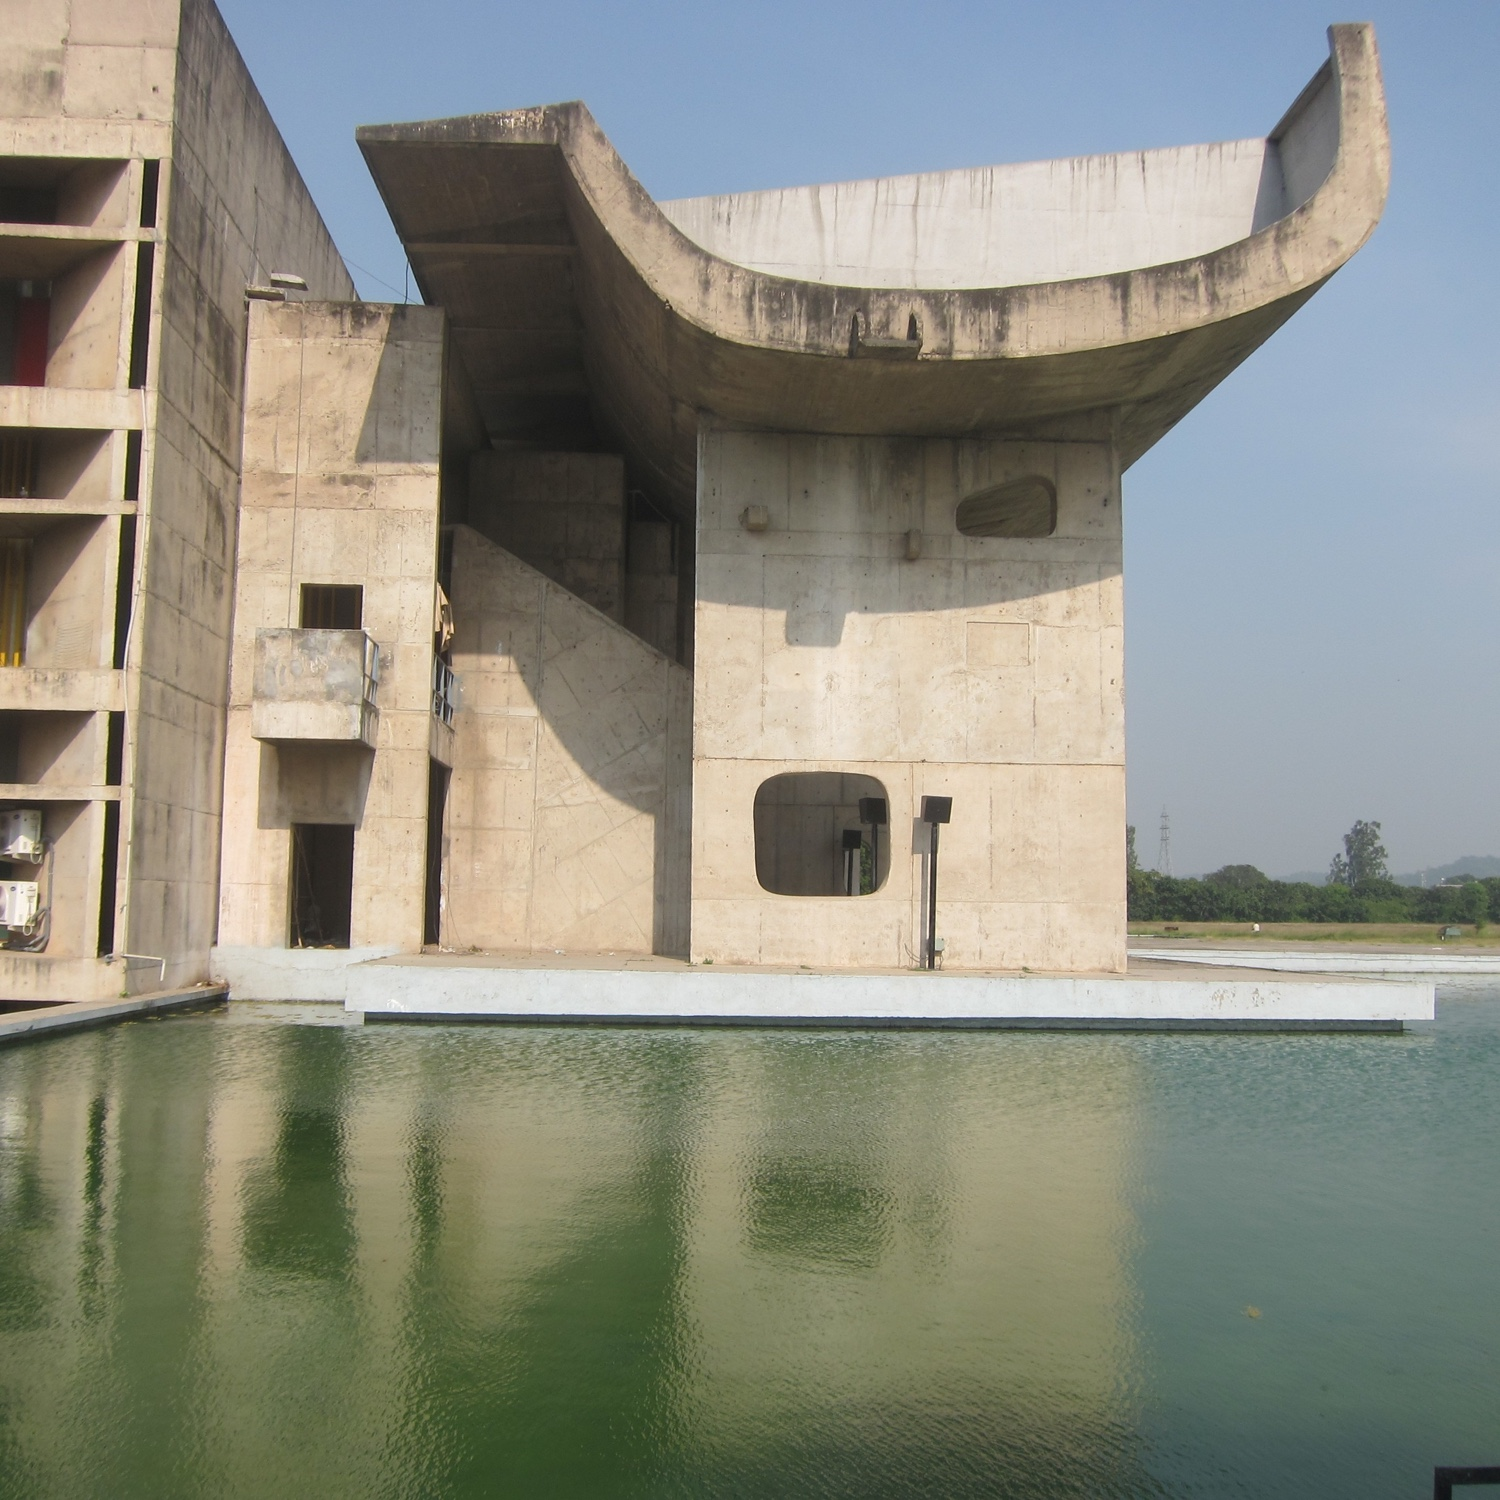 Complexe du Capitole, Chandigarh, India, 1952. Photo by Bénédicte Gandini © FLC/ADAGP.